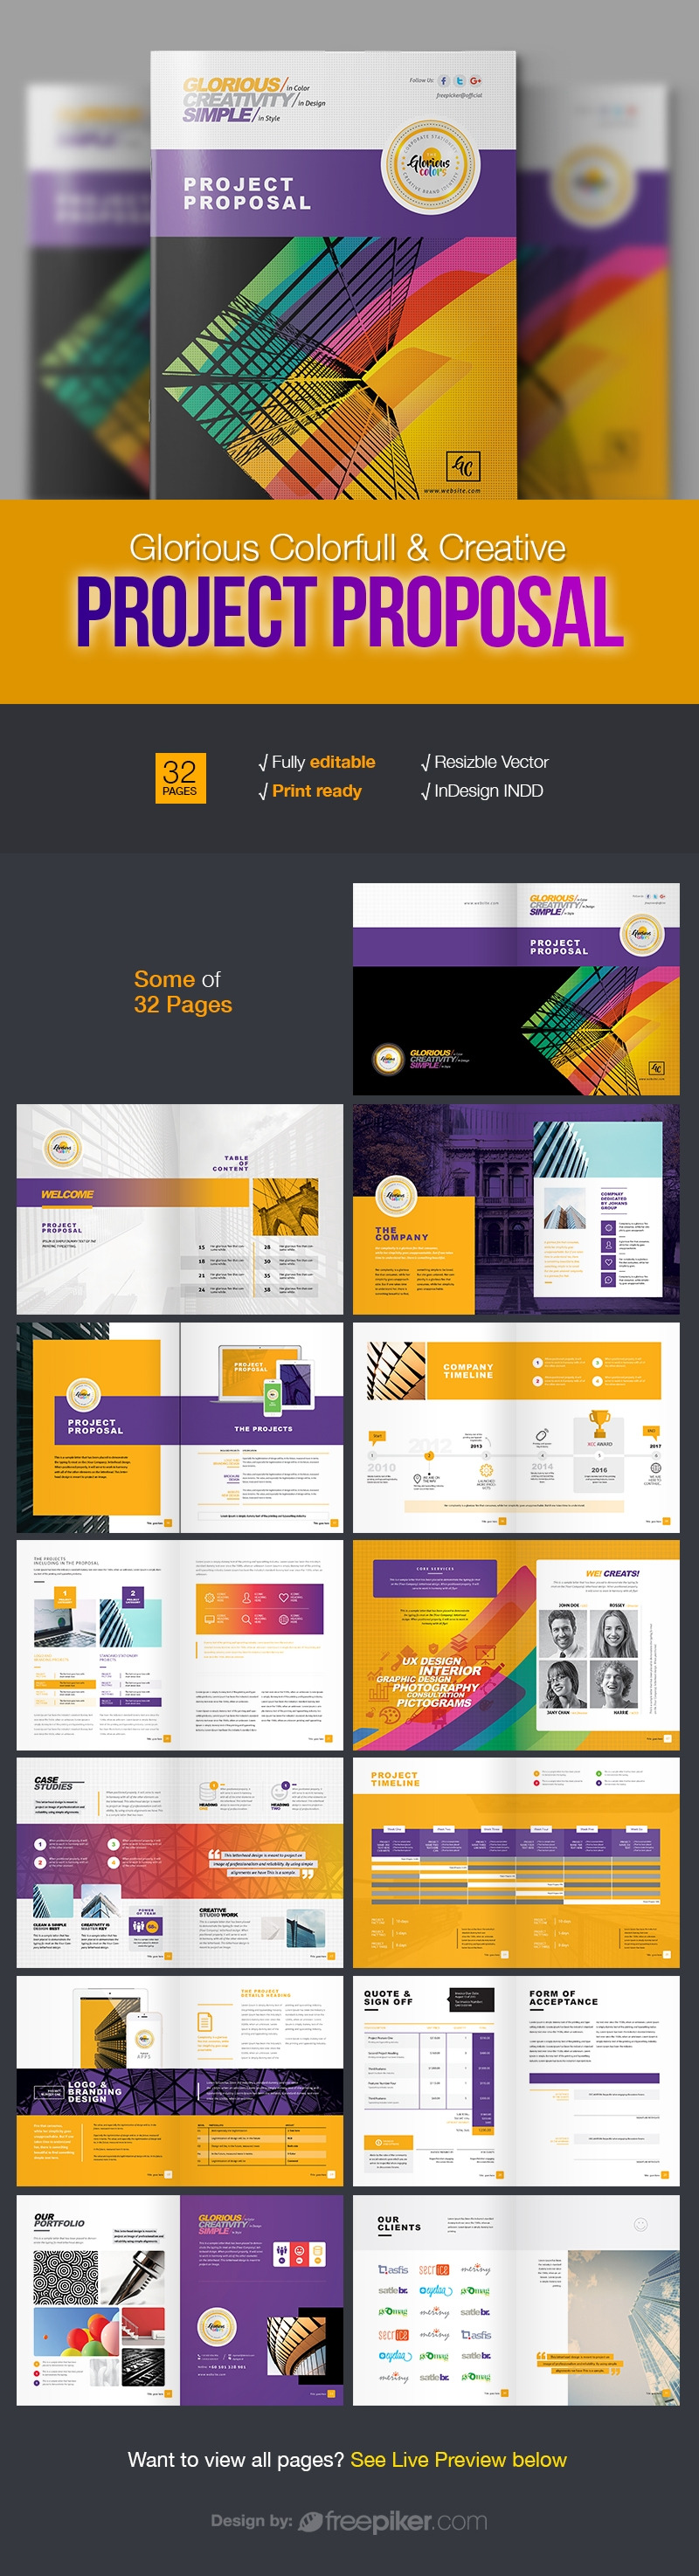 Clean & Creative Corporate Project Proposal